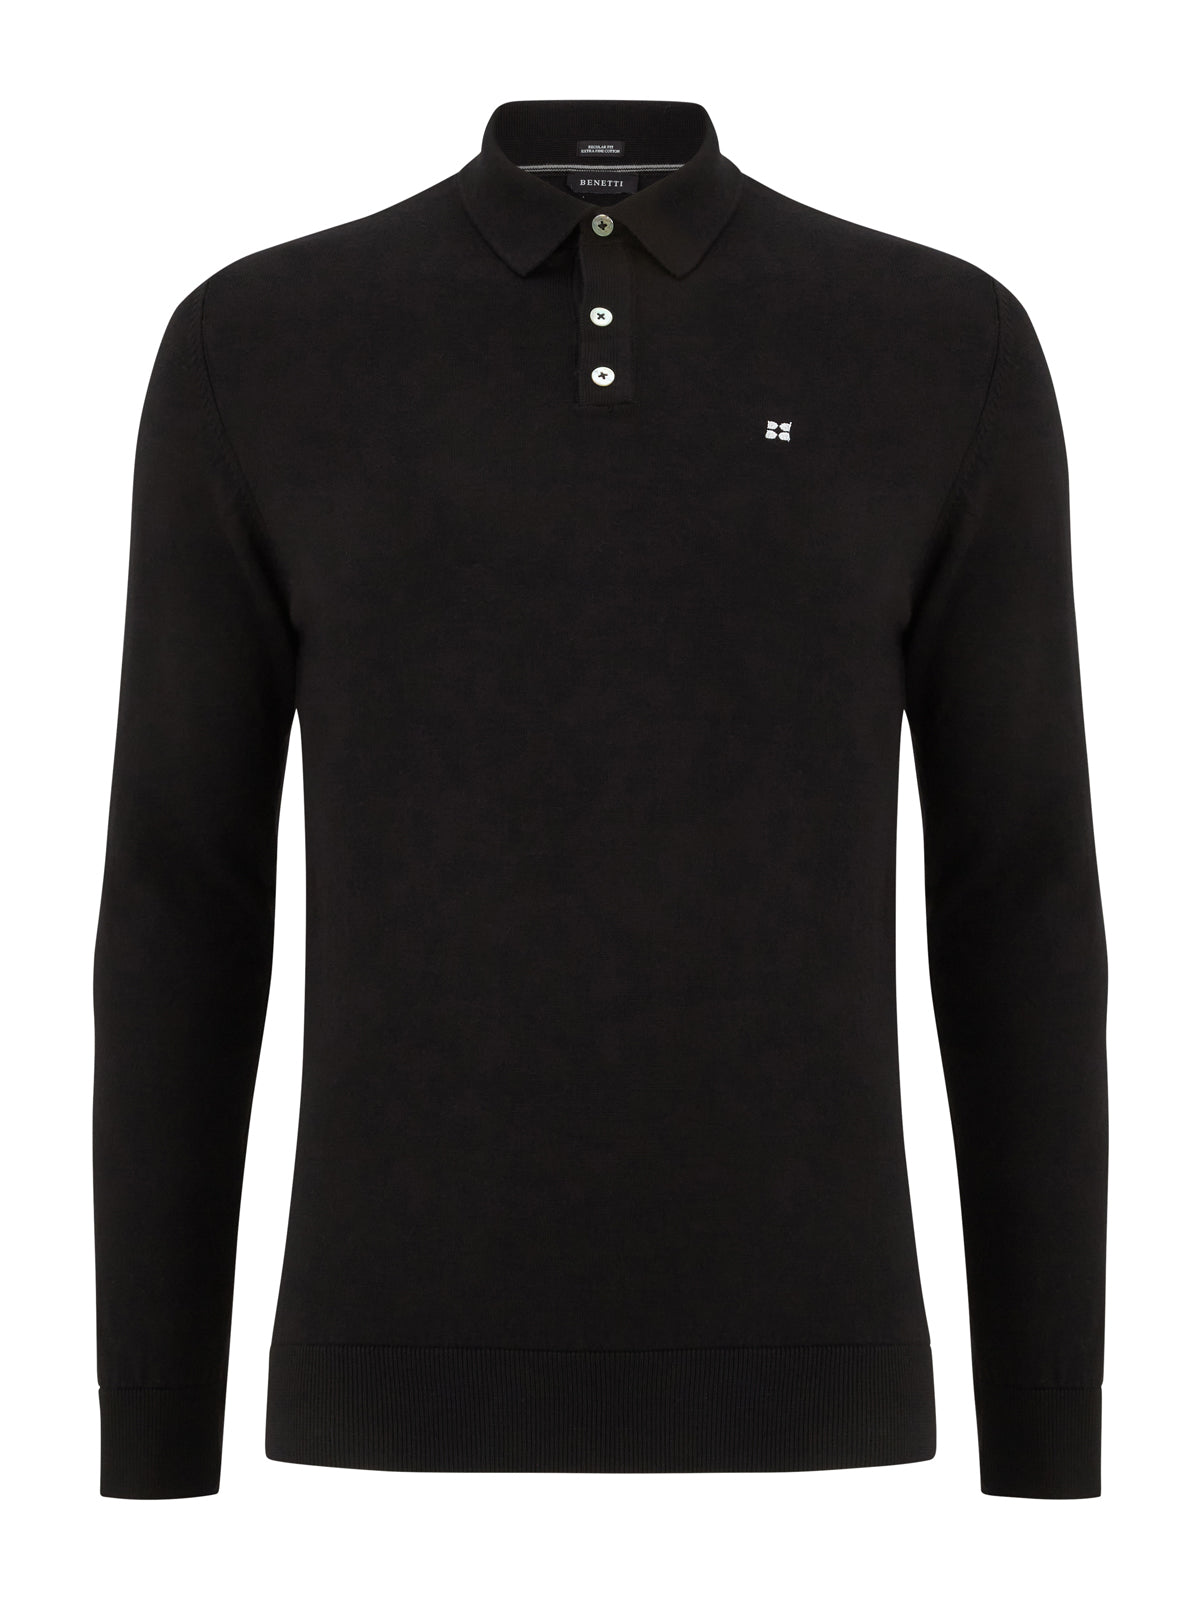 Geron Black Benetti Sweater